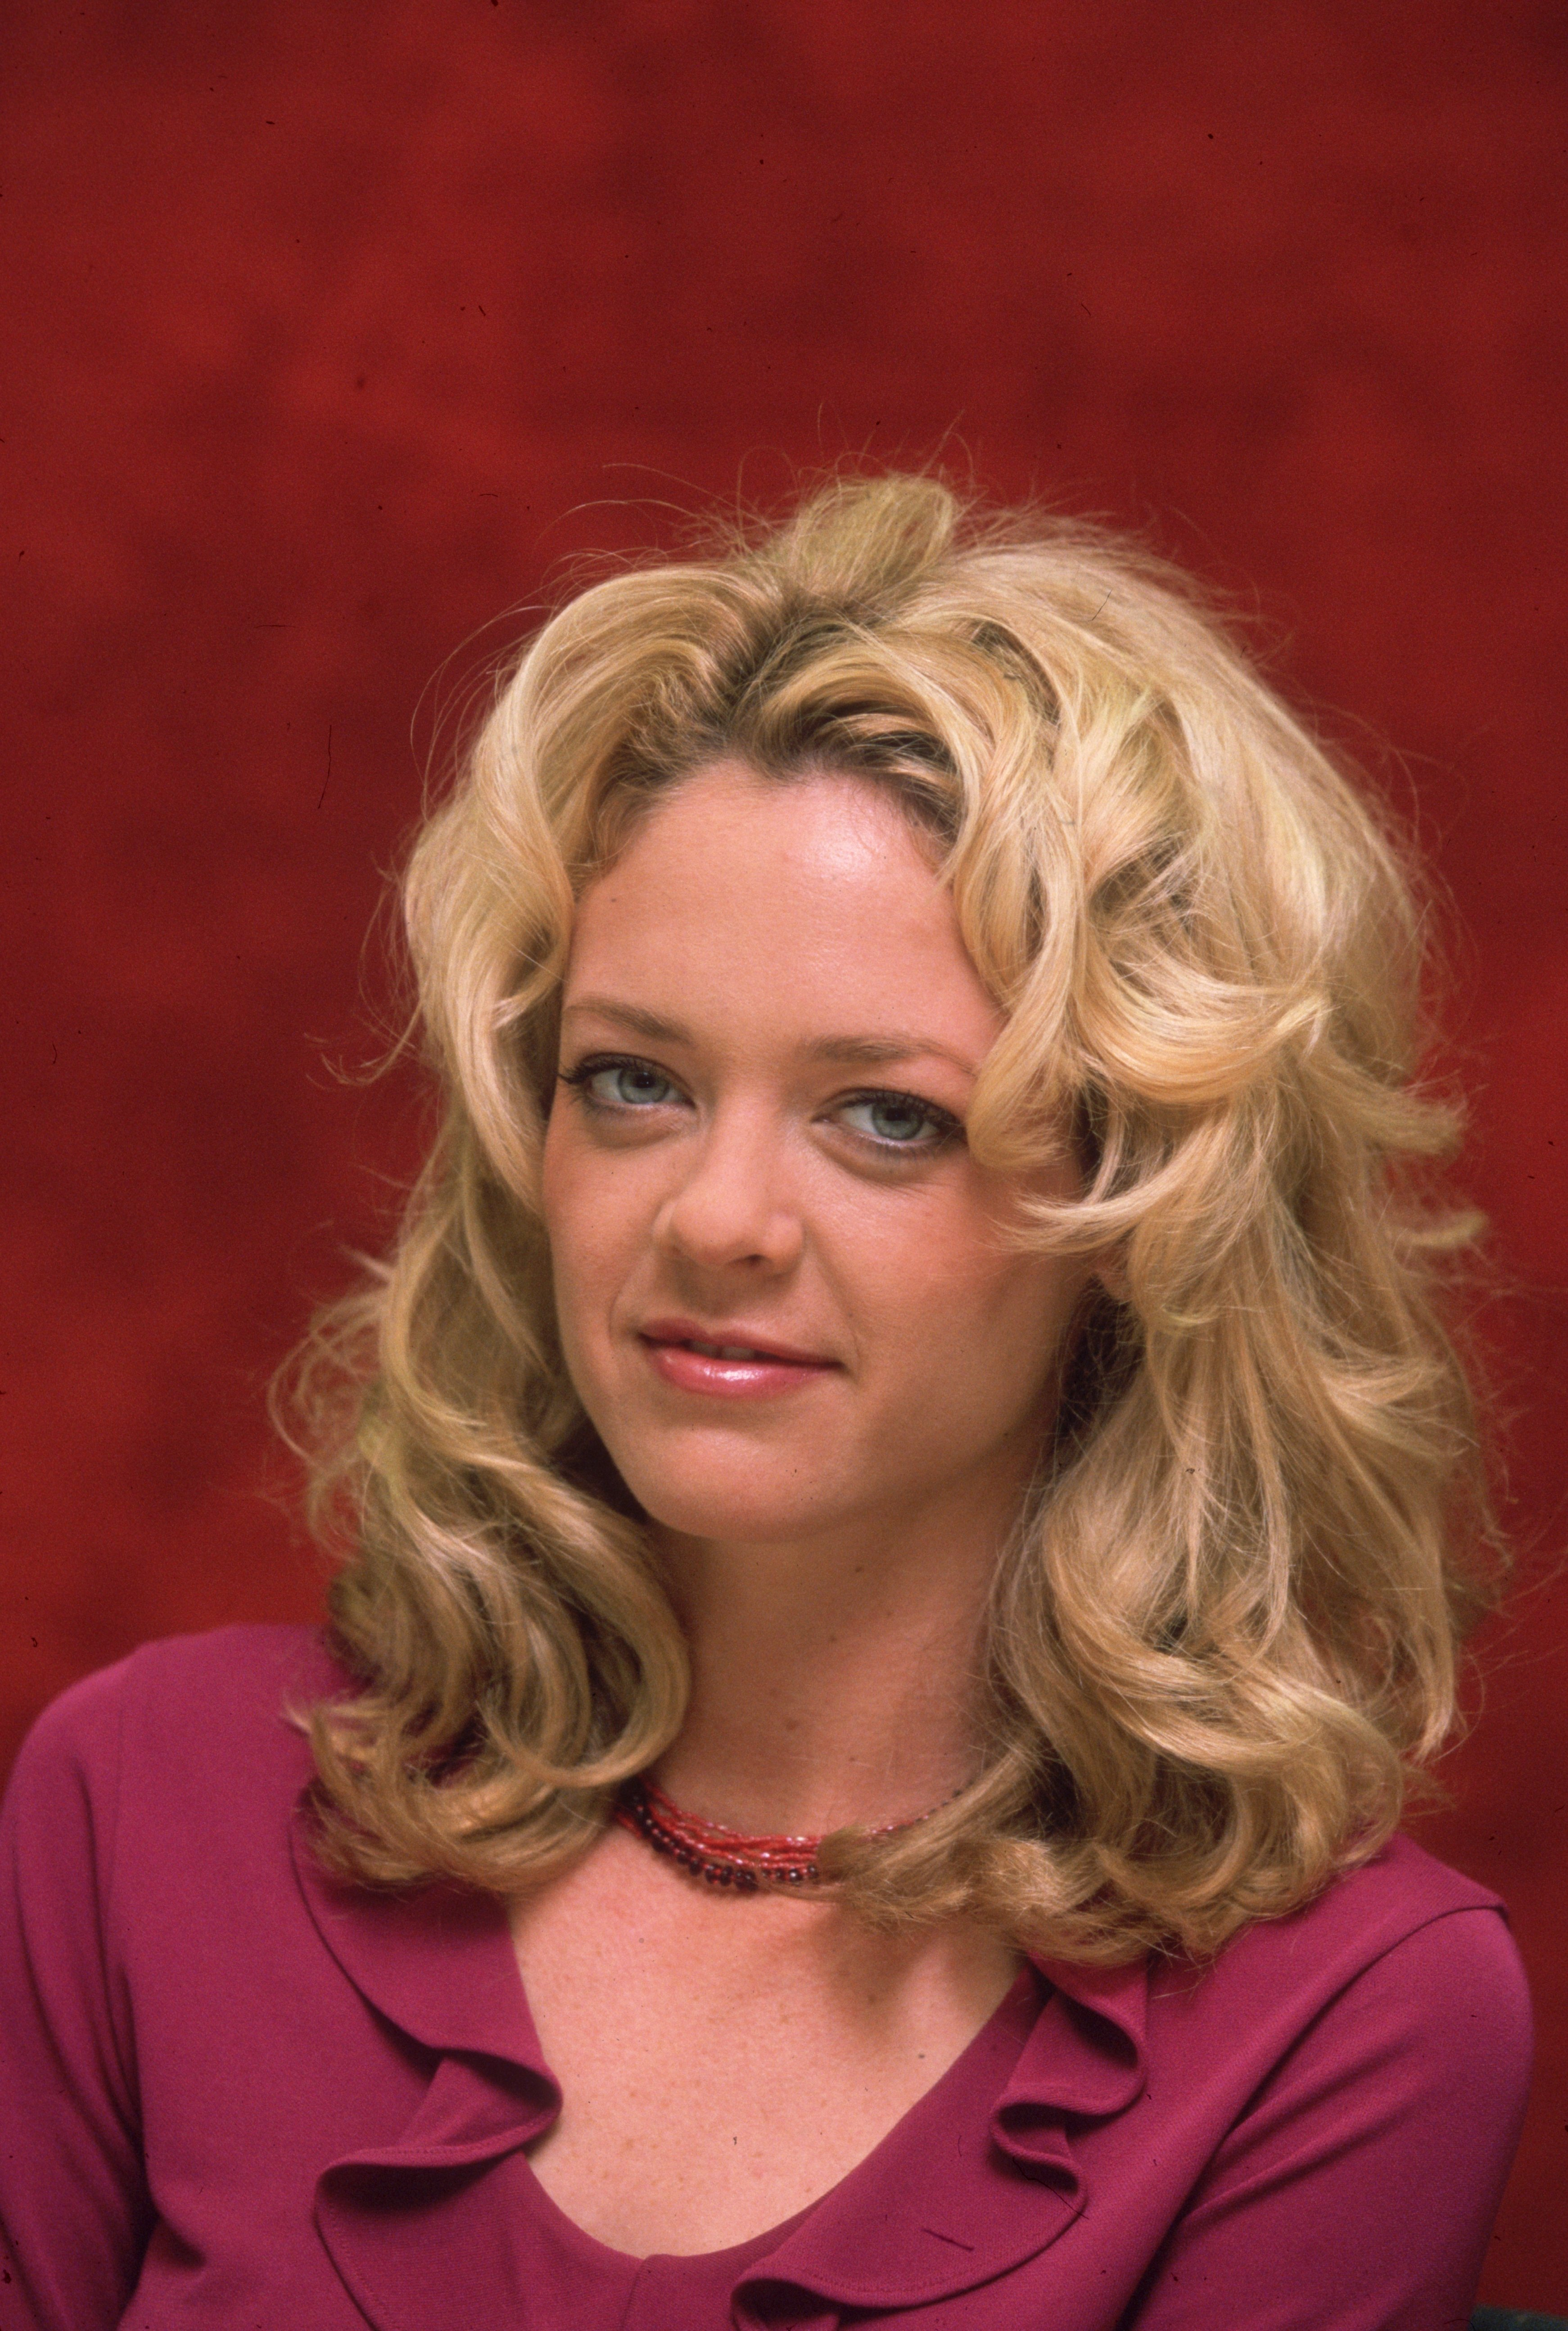 Headshot studio portrait of Lisa Robin Kelly, taken in Beverly Hills, California in 2000 | Source: Getty Images